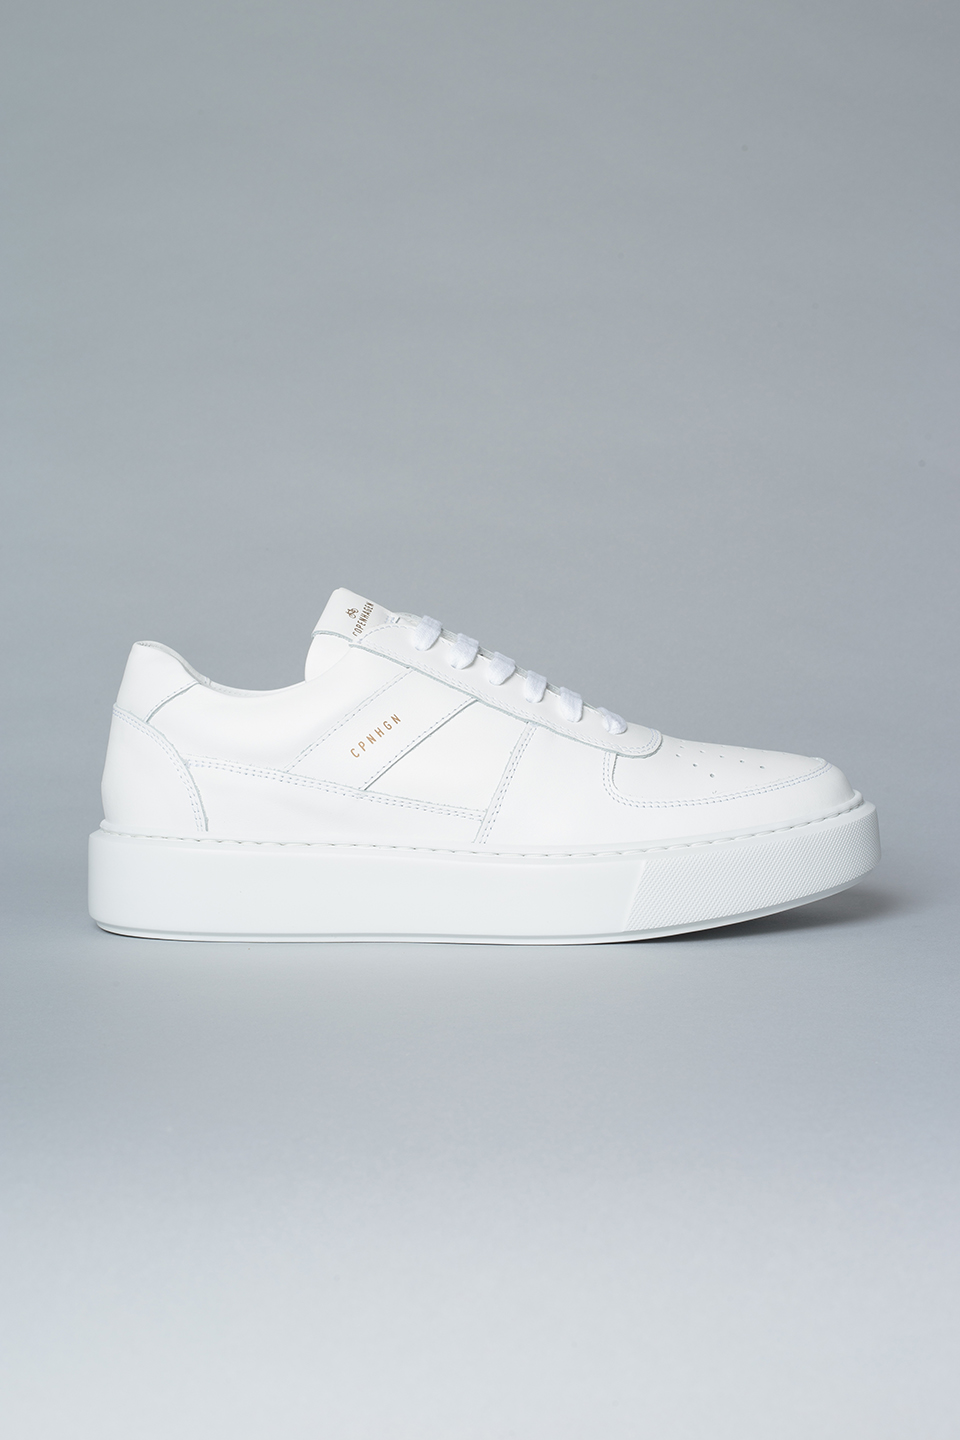 CPH152M vitello white - alternative 1